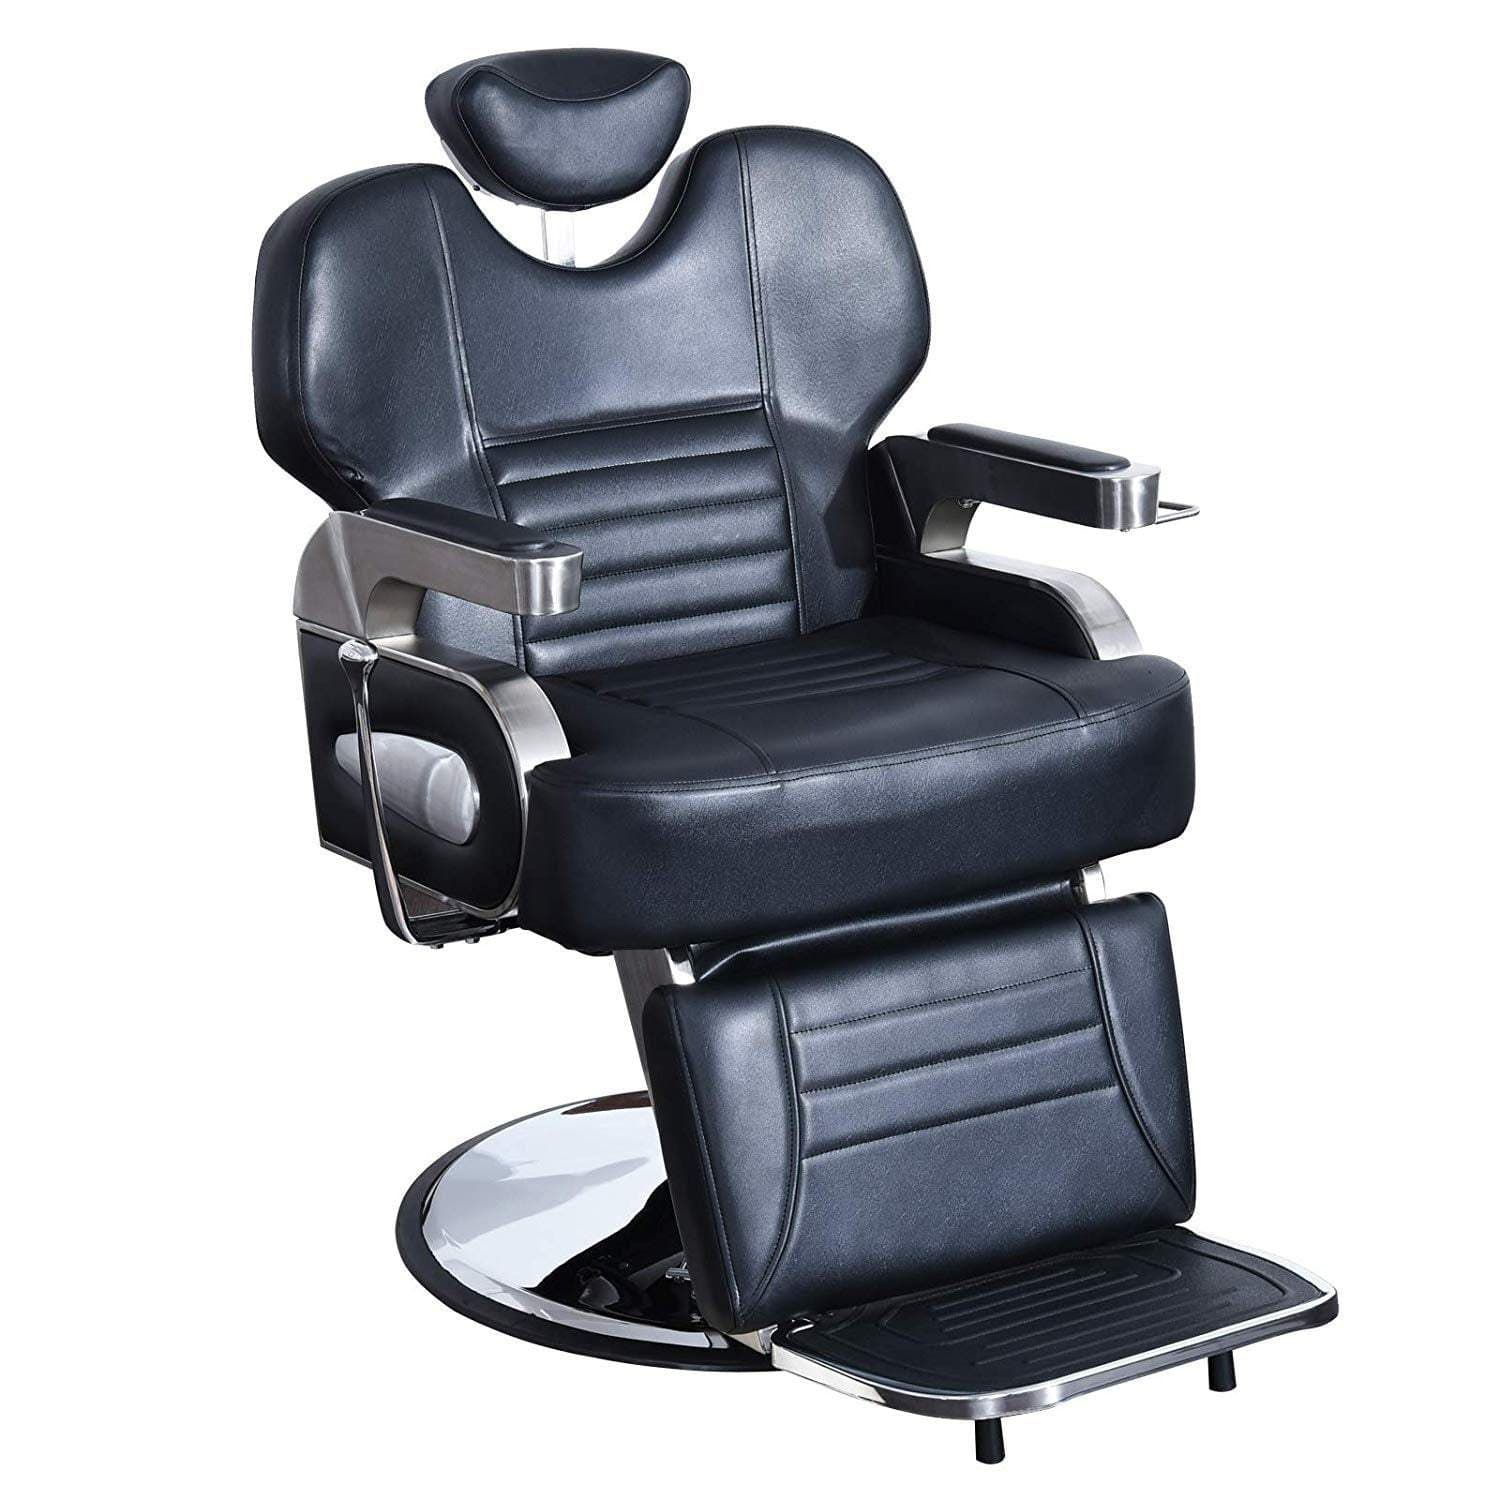 Black Professional Barber Chair BX-2916-1